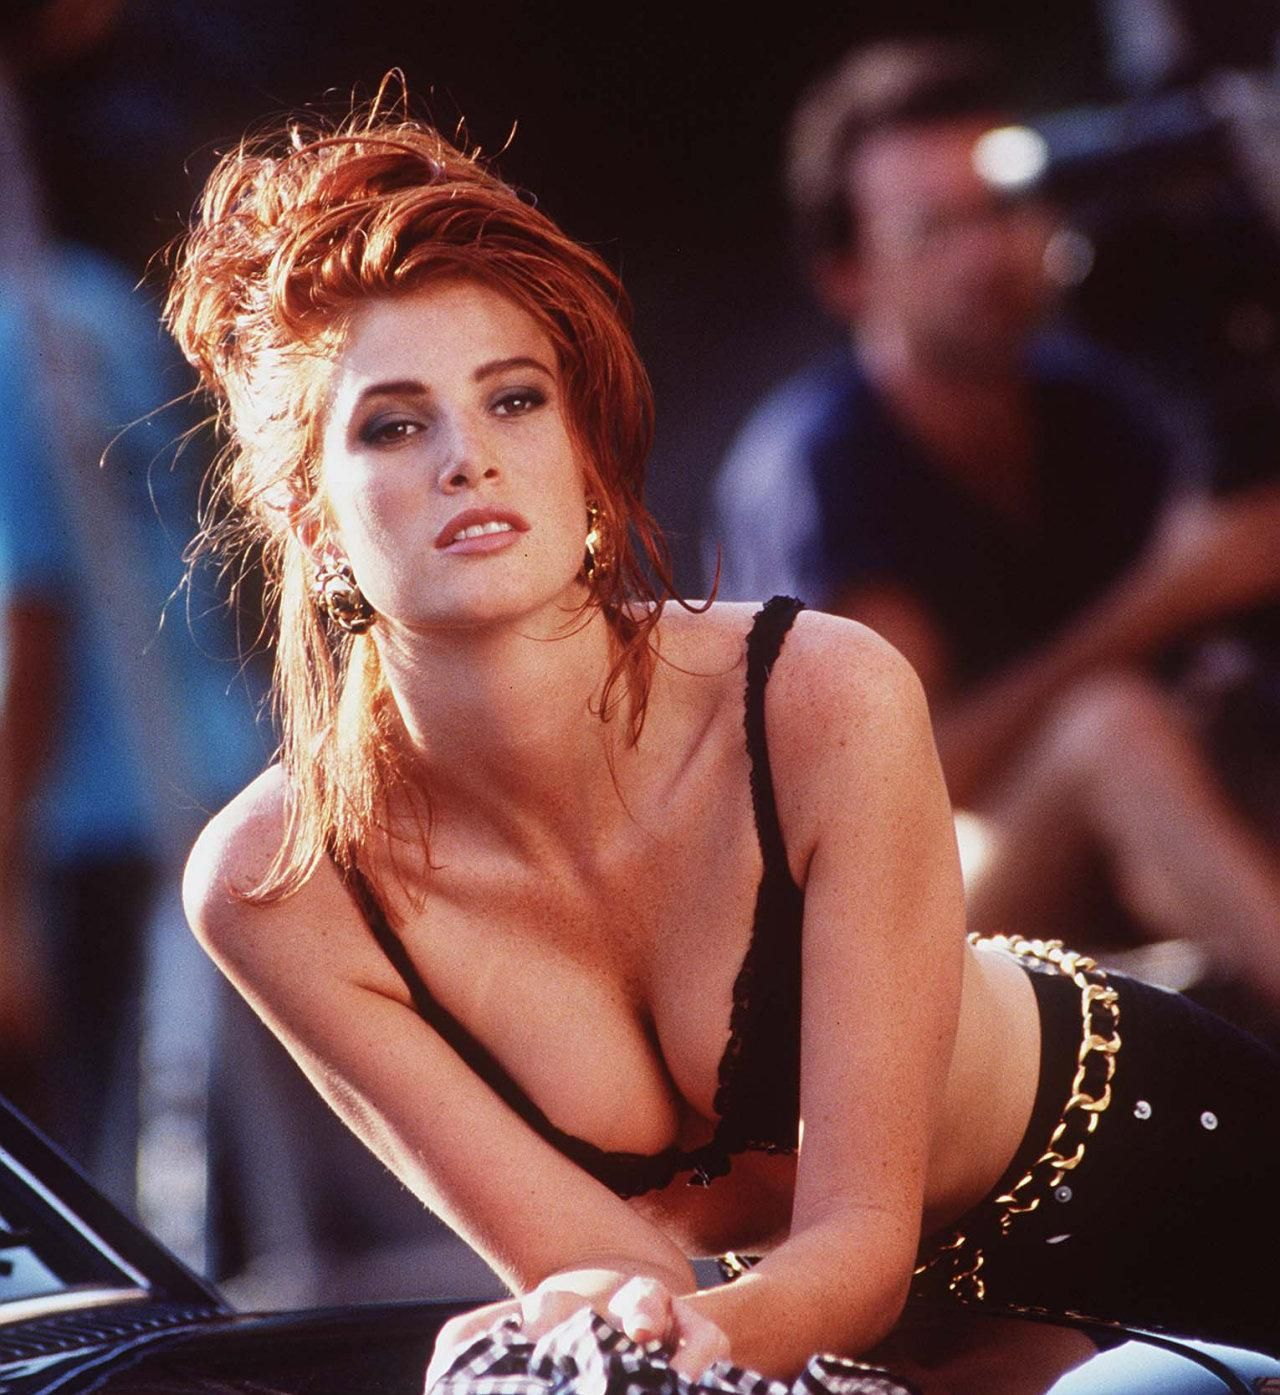 21 best angie everhart images on pinterest | angie everhart, girl